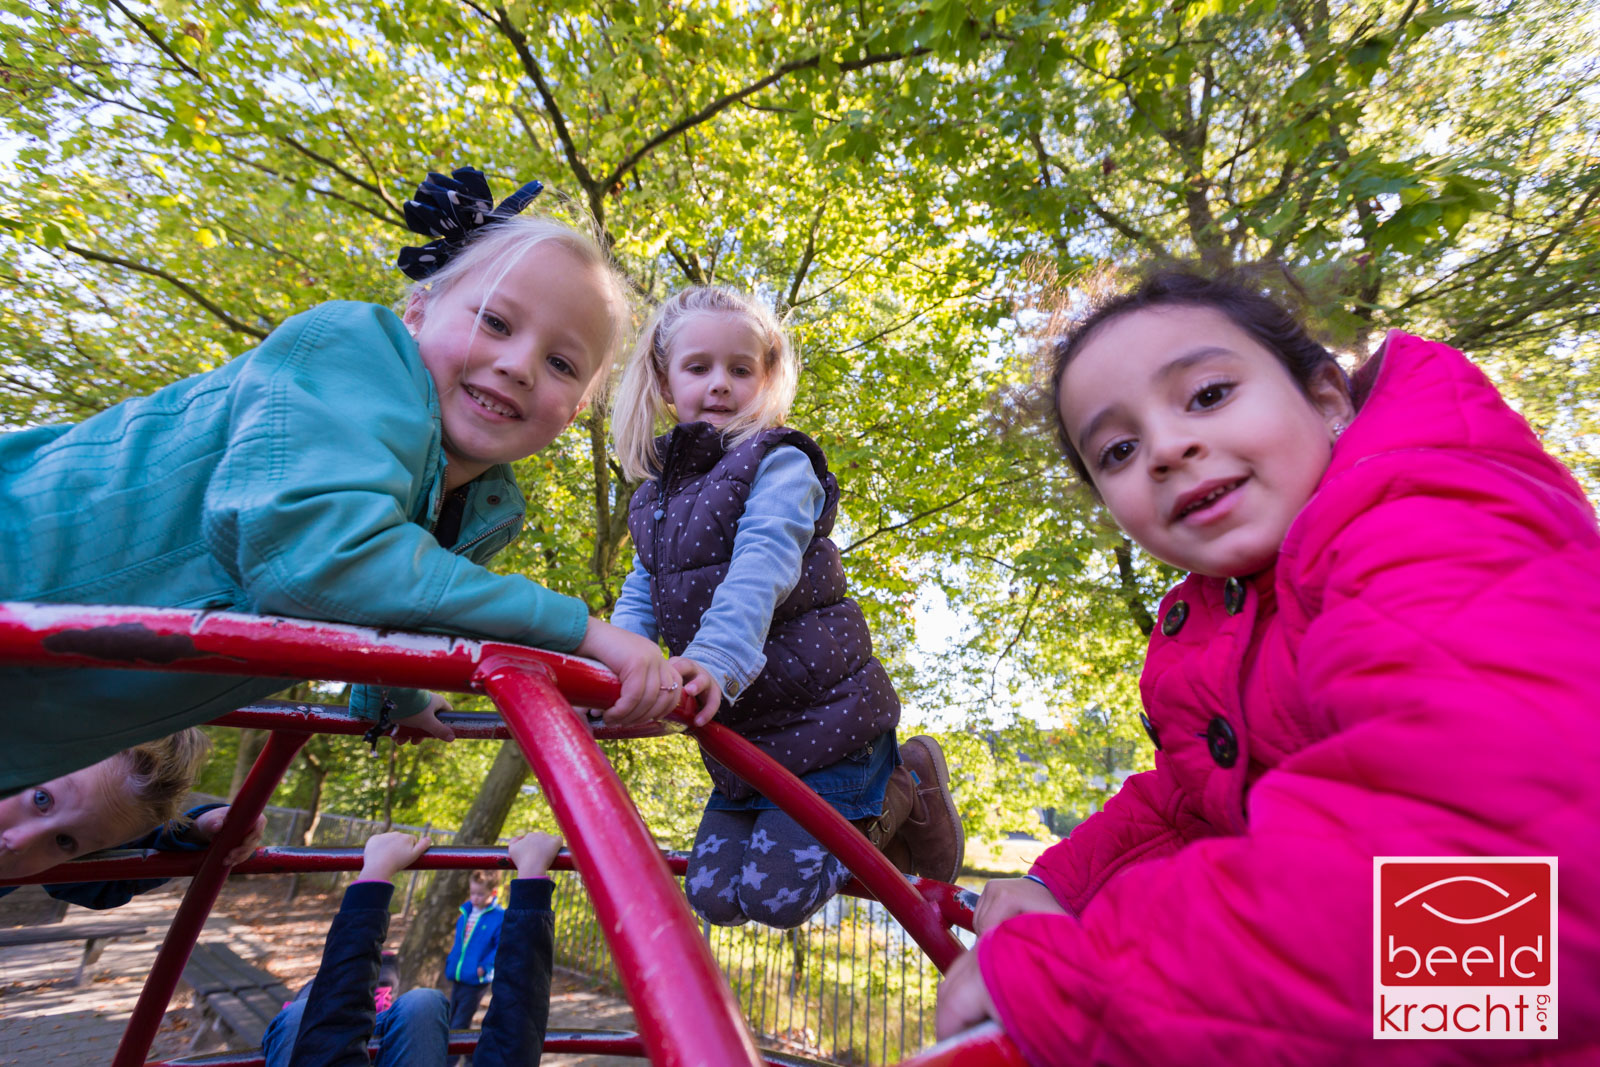 Three young girls photographed on a climbing frame in the playground of the school.